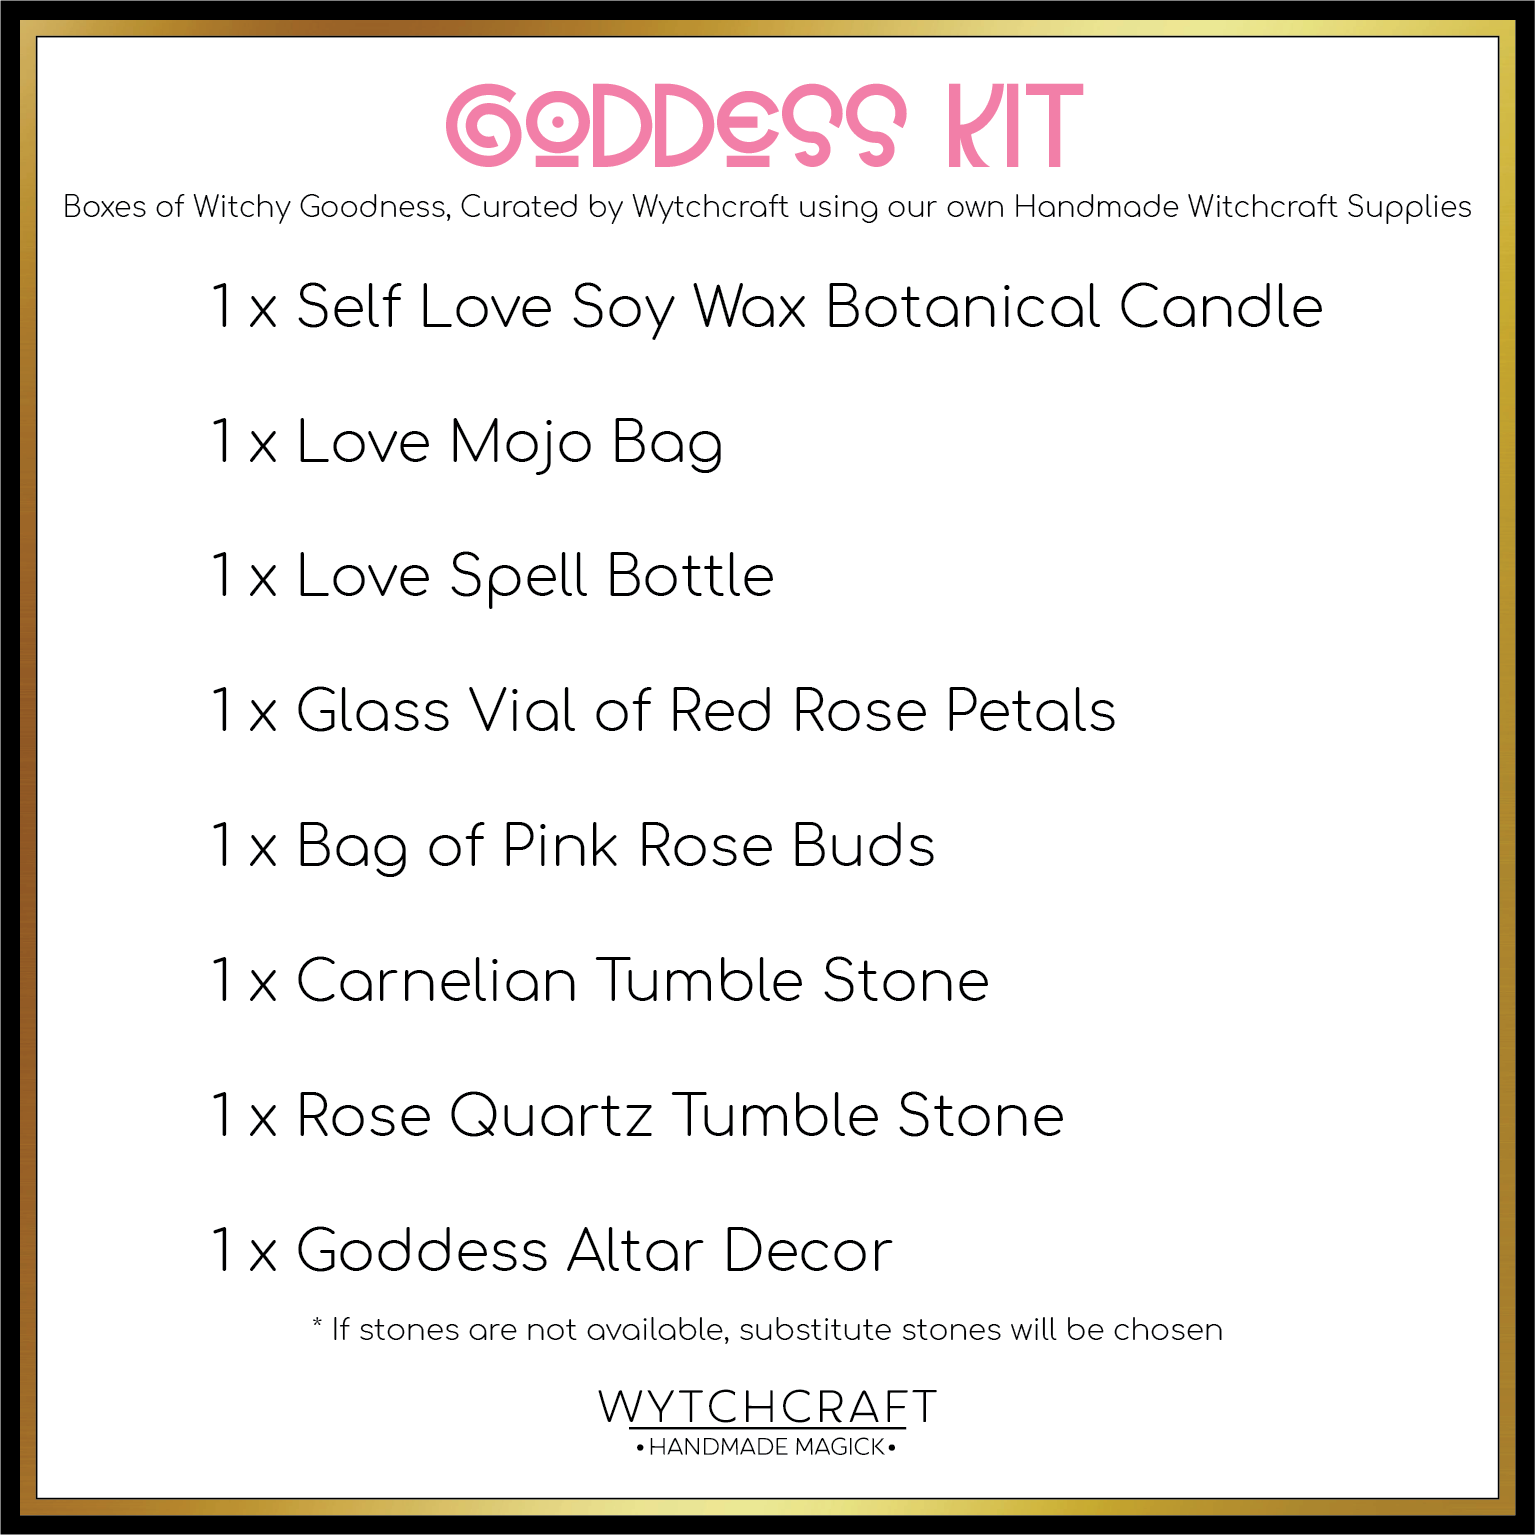 Goddess Self-Love Kit